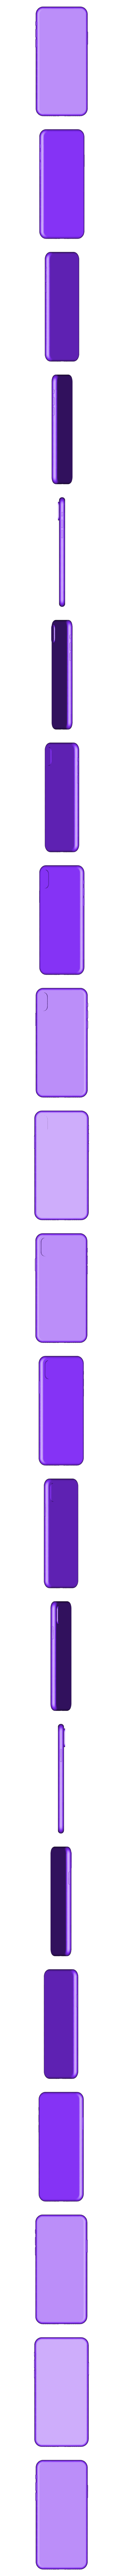 iPhone X.stl Download free STL file iPhone X • 3D printer template, fousfous